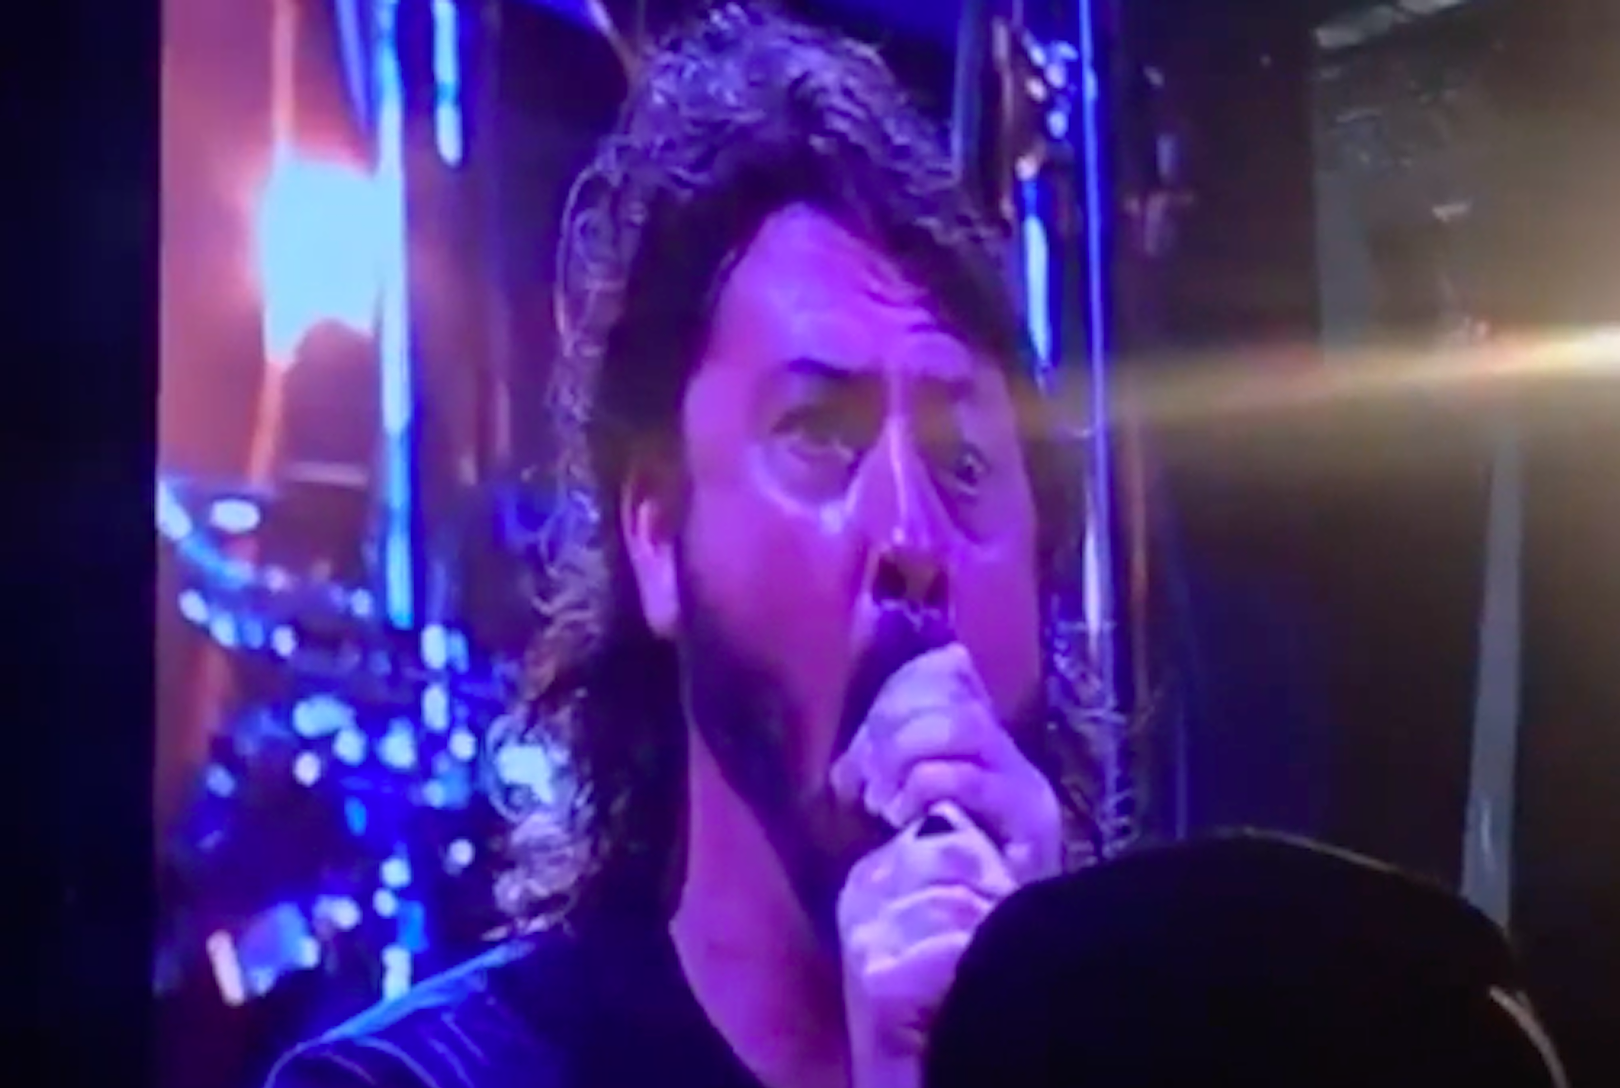 Watch Dave Grohl Mock Death Growls + Backing Tracks During Foo Fighters Performance